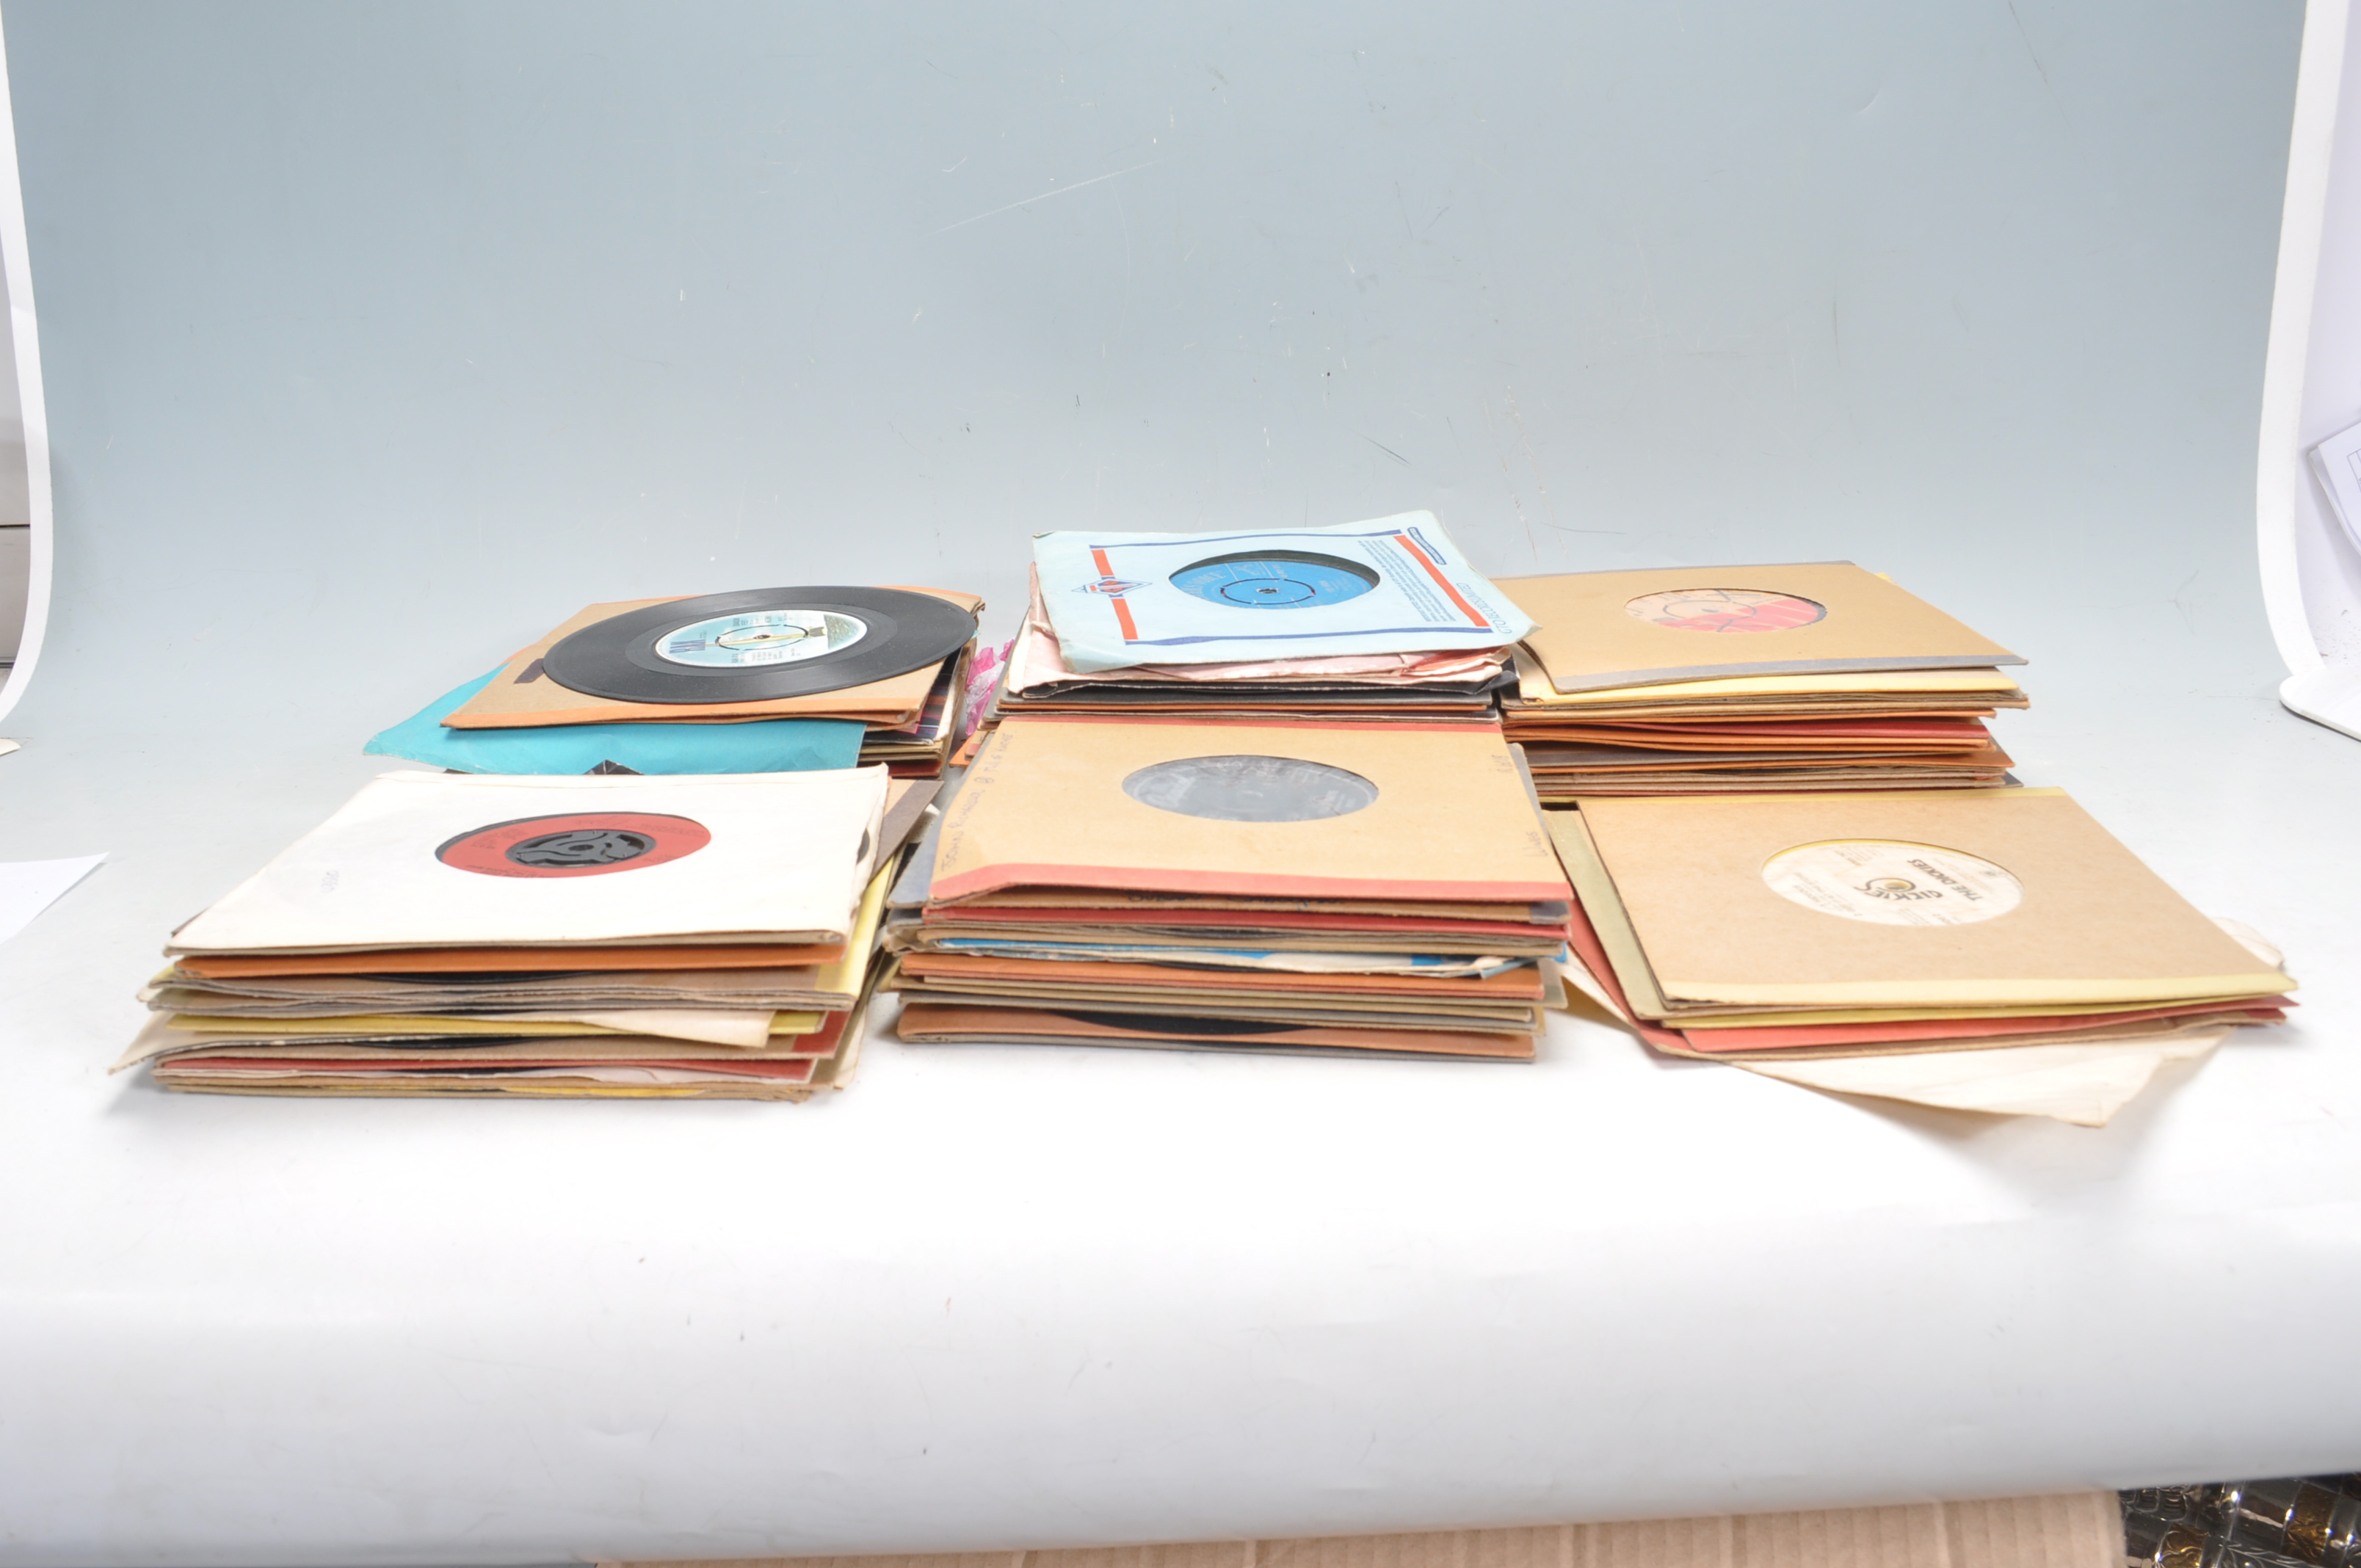 """LARGE COLLECTION OF VINTAGE VINYL 45RPM 7"""" SINGLES - Image 2 of 9"""